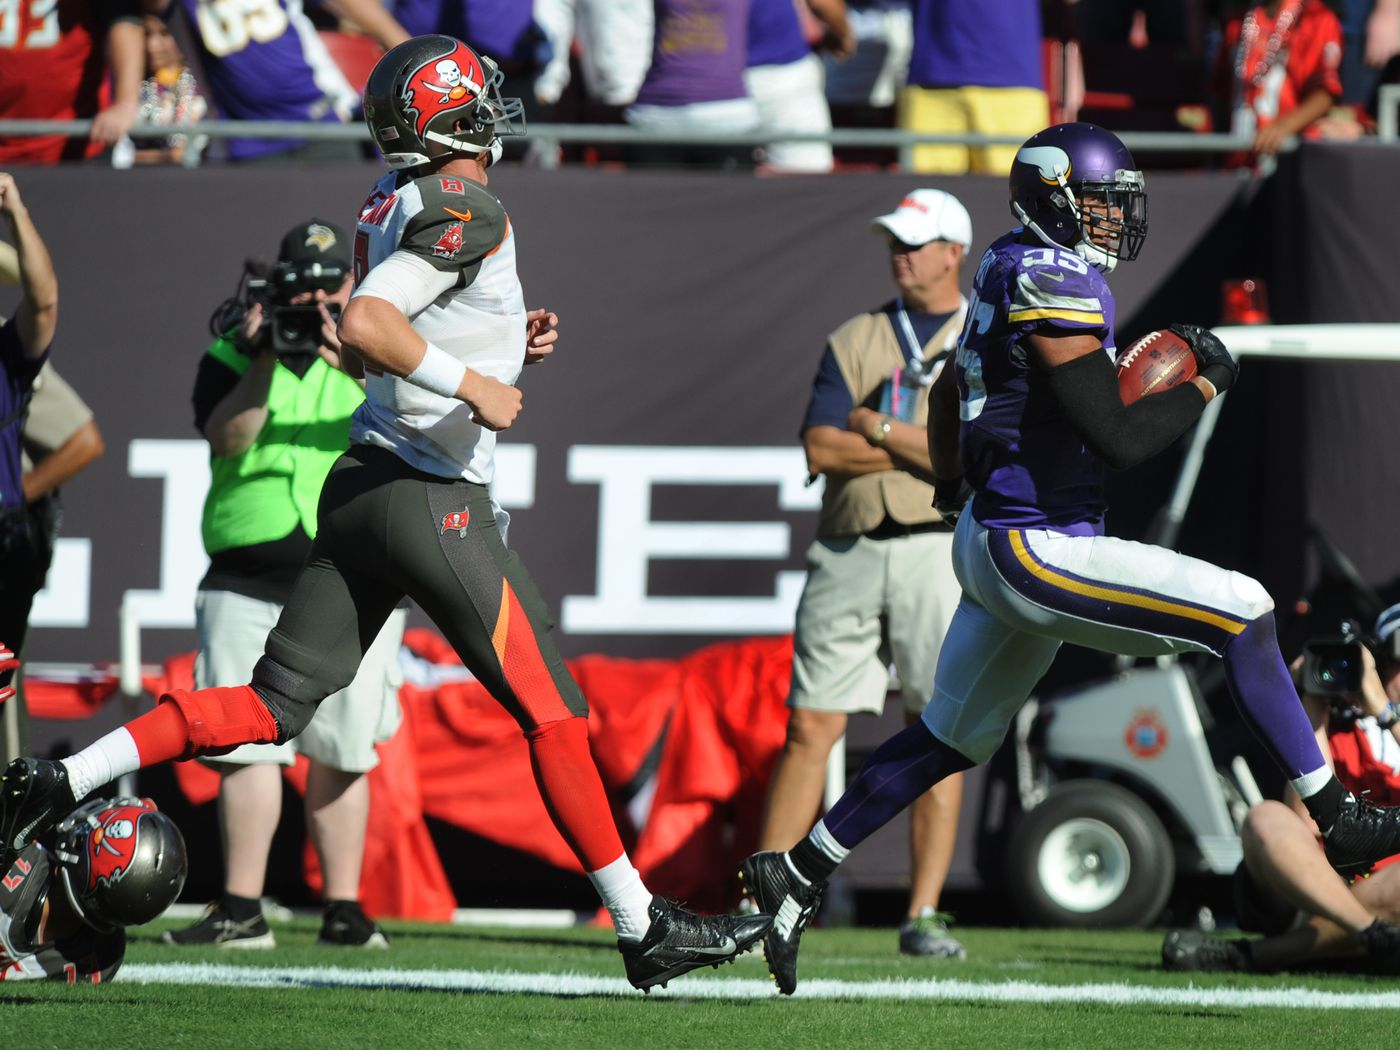 NFL Trade Rumors: Mike Glennon pops up again after Teddy Bridgewater injury